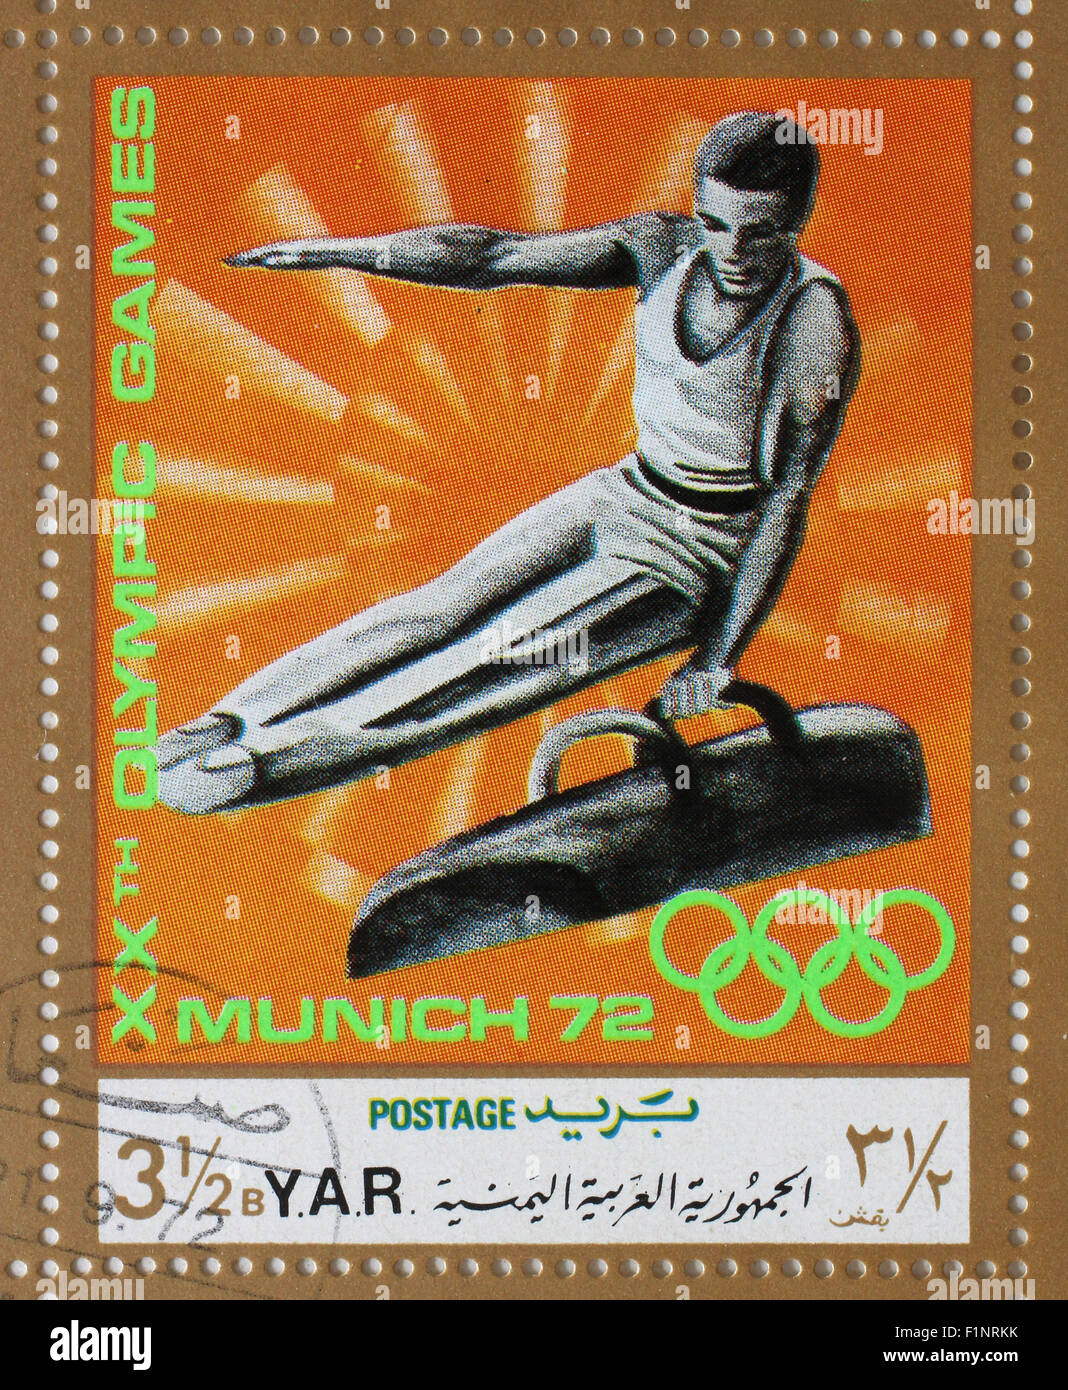 Stamp printed in Yemen Arab Republic shows gymnast on vaulting horse, Olympics in Munich, circa 1972 - Stock Image